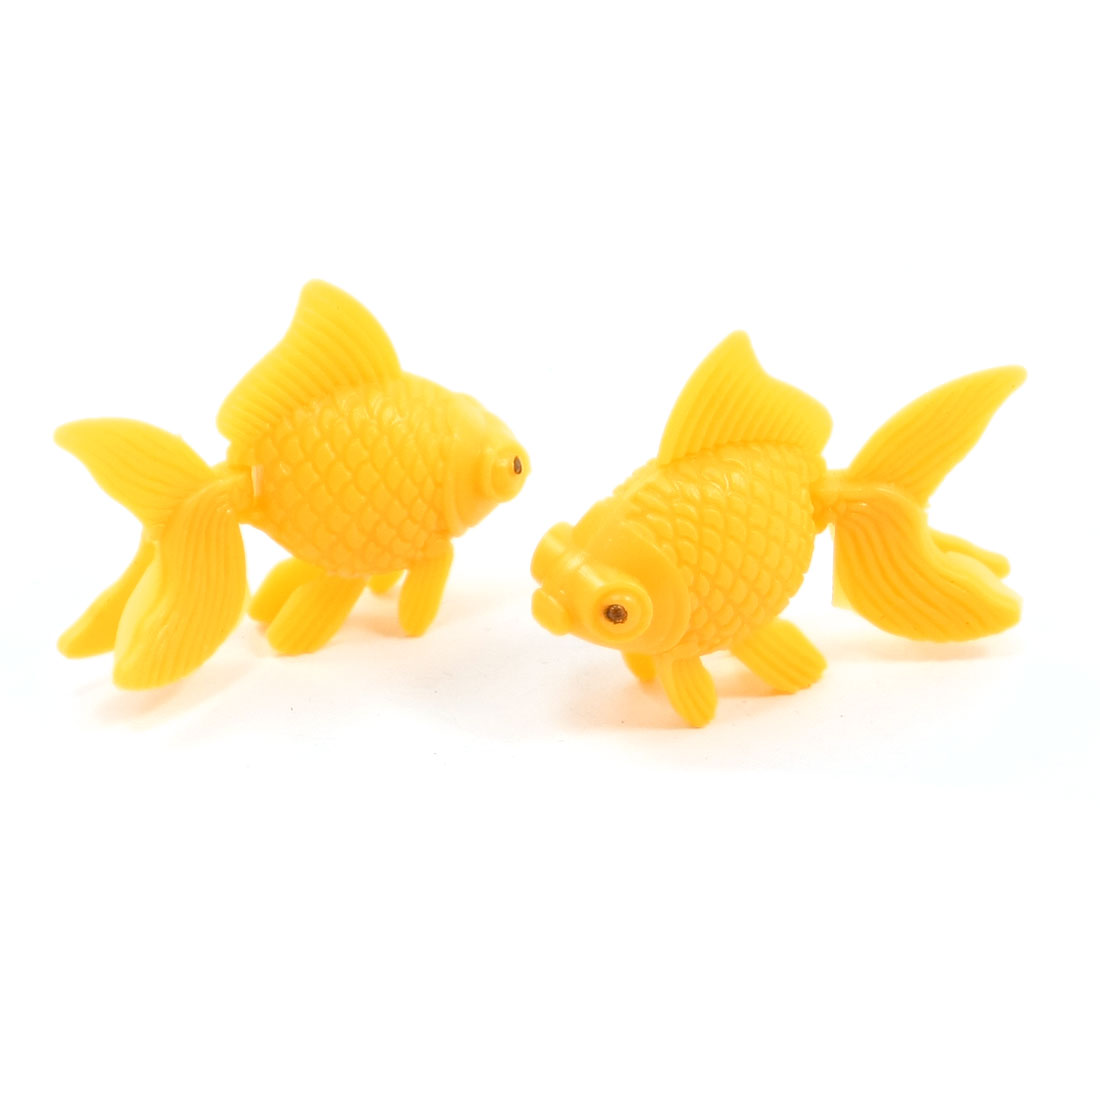 2 Pcs Yellow Emulational Artificial Plastic Goldfish for Fish Tank